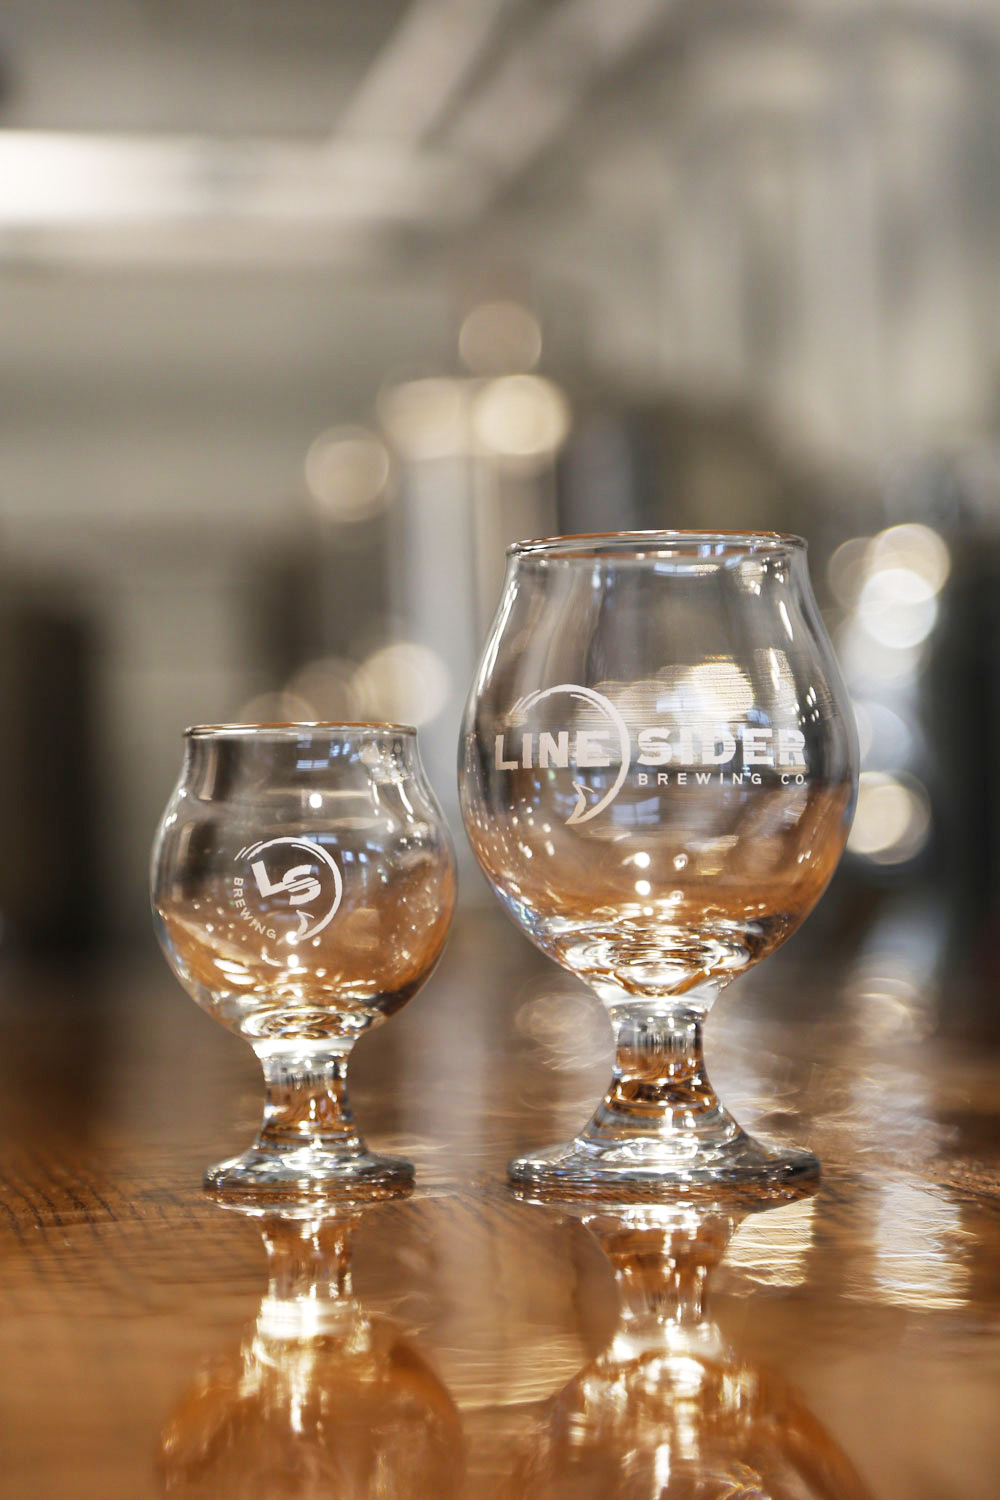 LineSider Brewing Company Glasses